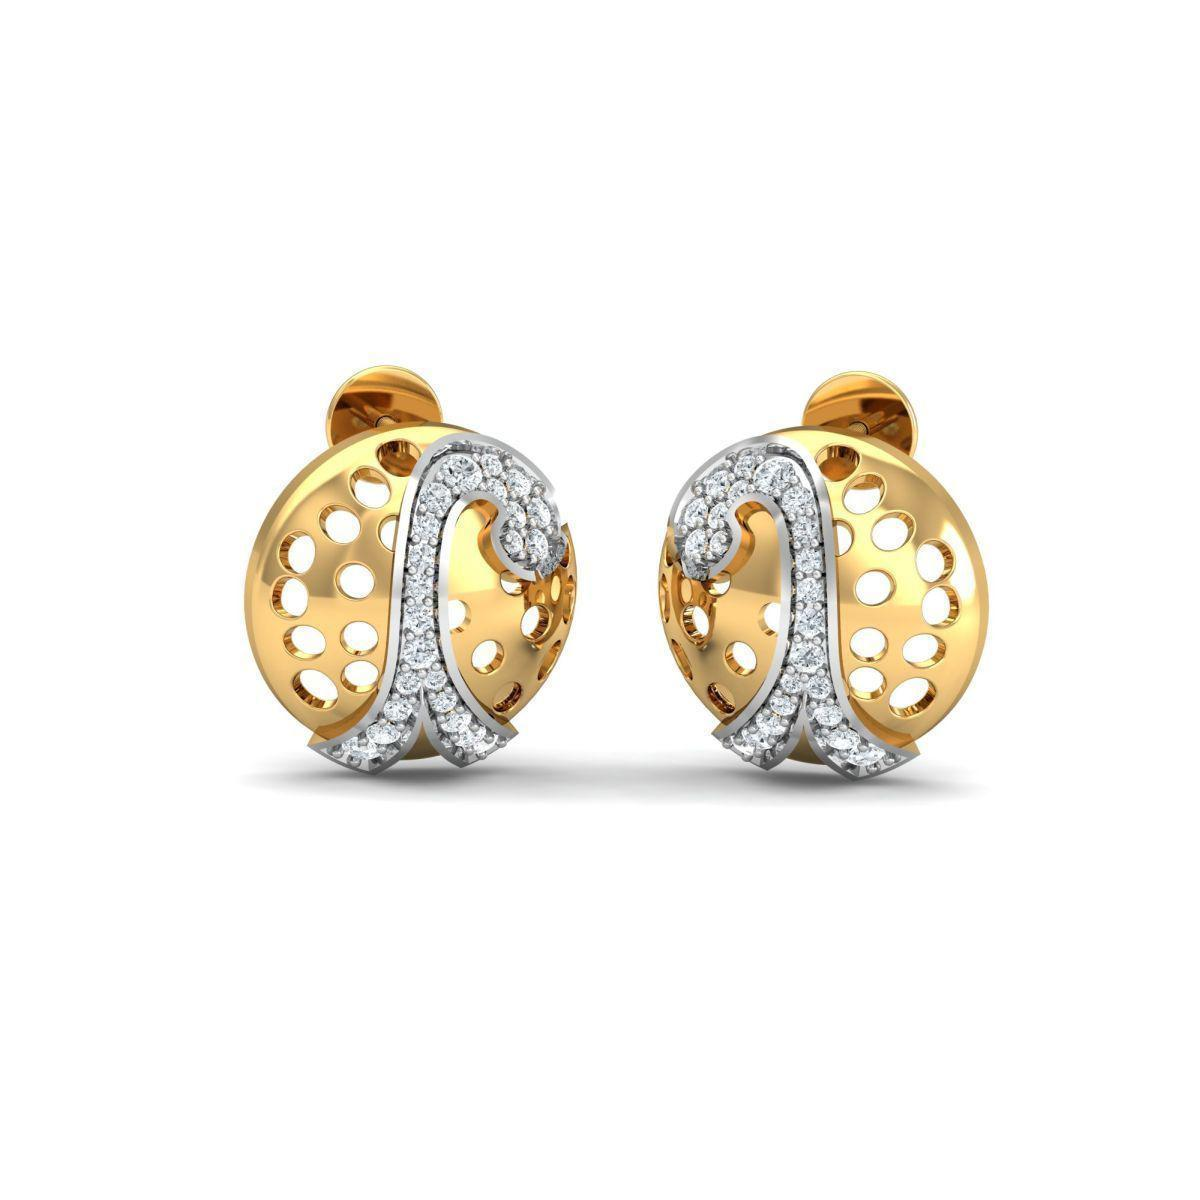 Diamoire Jewels 18kt Yellow Gold 0.18ct Pave Diamond Infinity Earrings I a67e6c